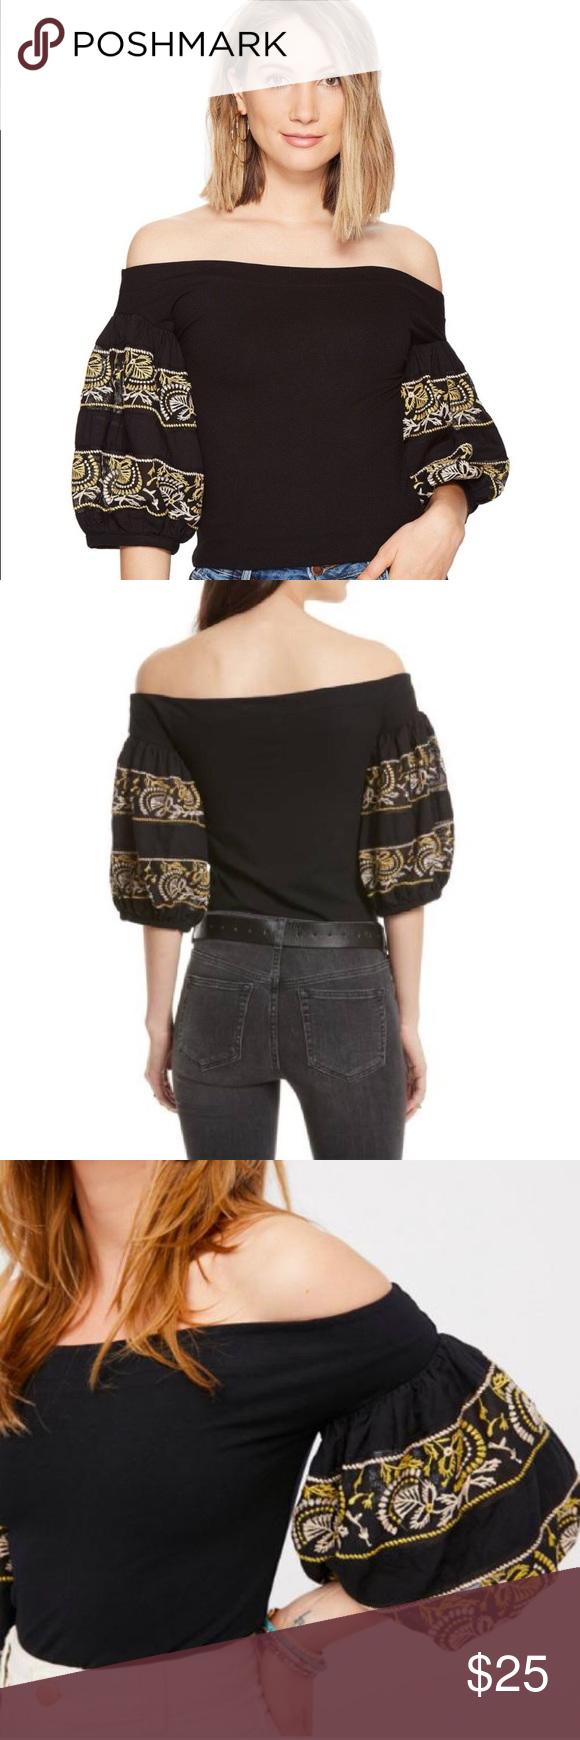 829961dda46da Free People Rock With It Off Shoulder Top Pre owned in good condition. No  stains